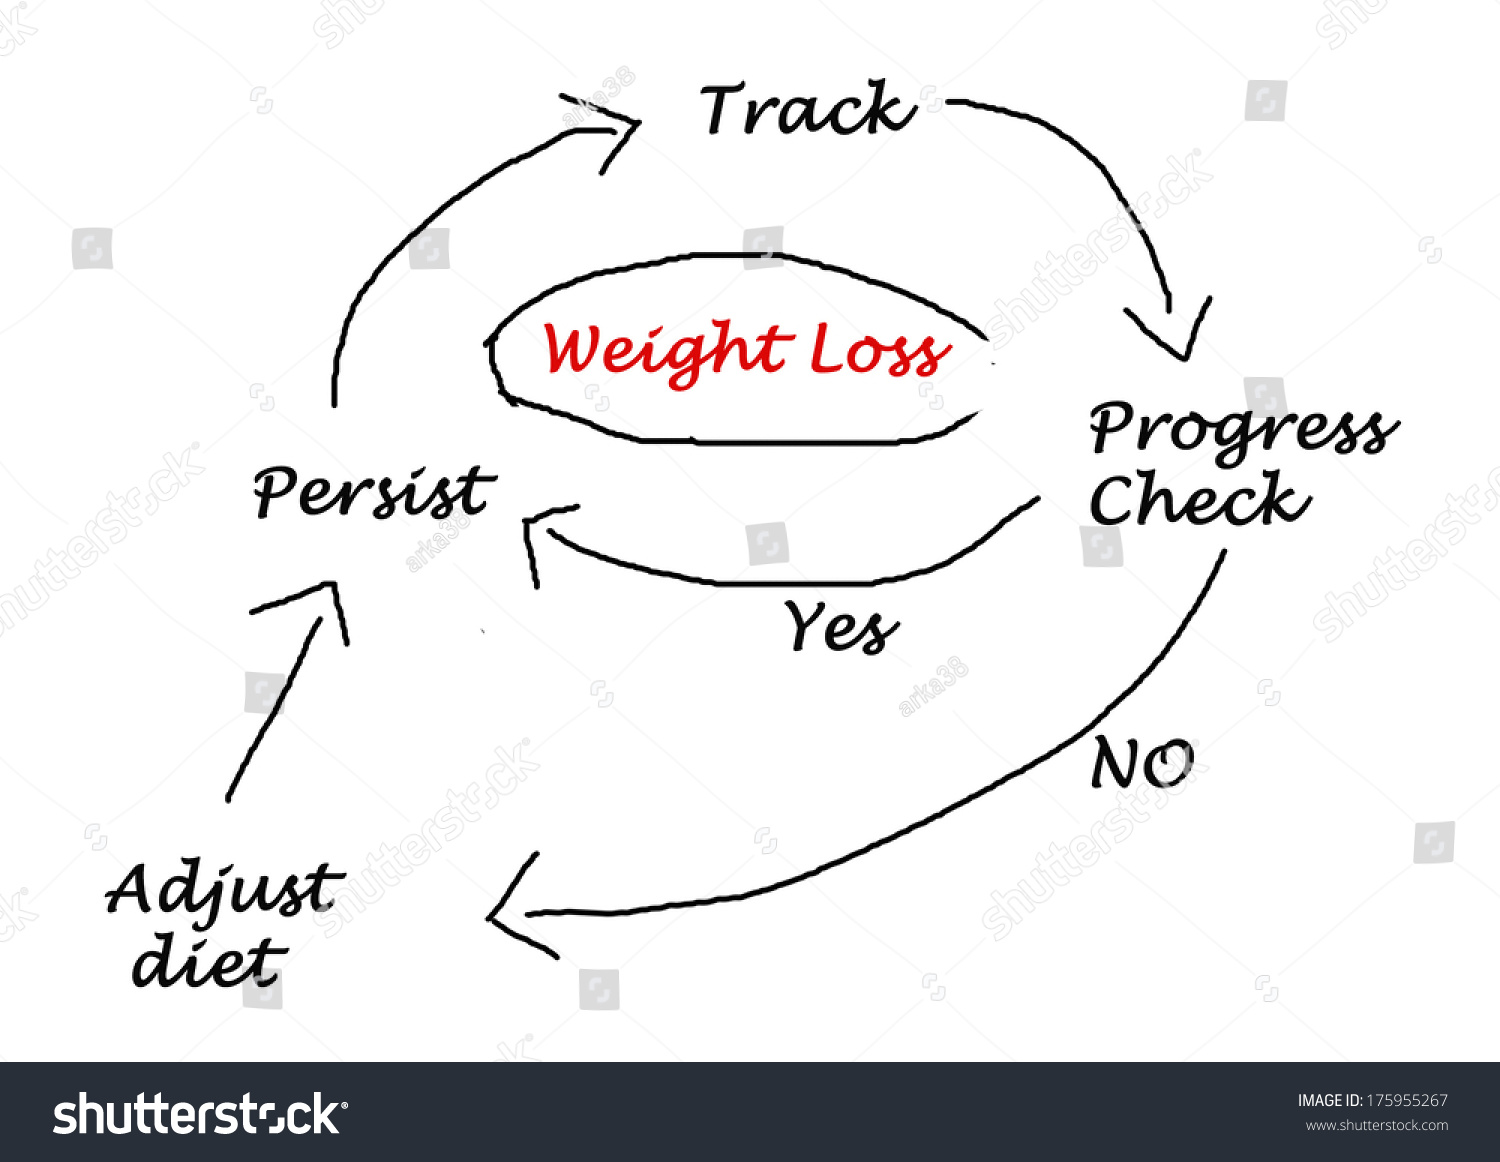 hight resolution of diagram weight loss stock illustration 175955267diagram of weight loss